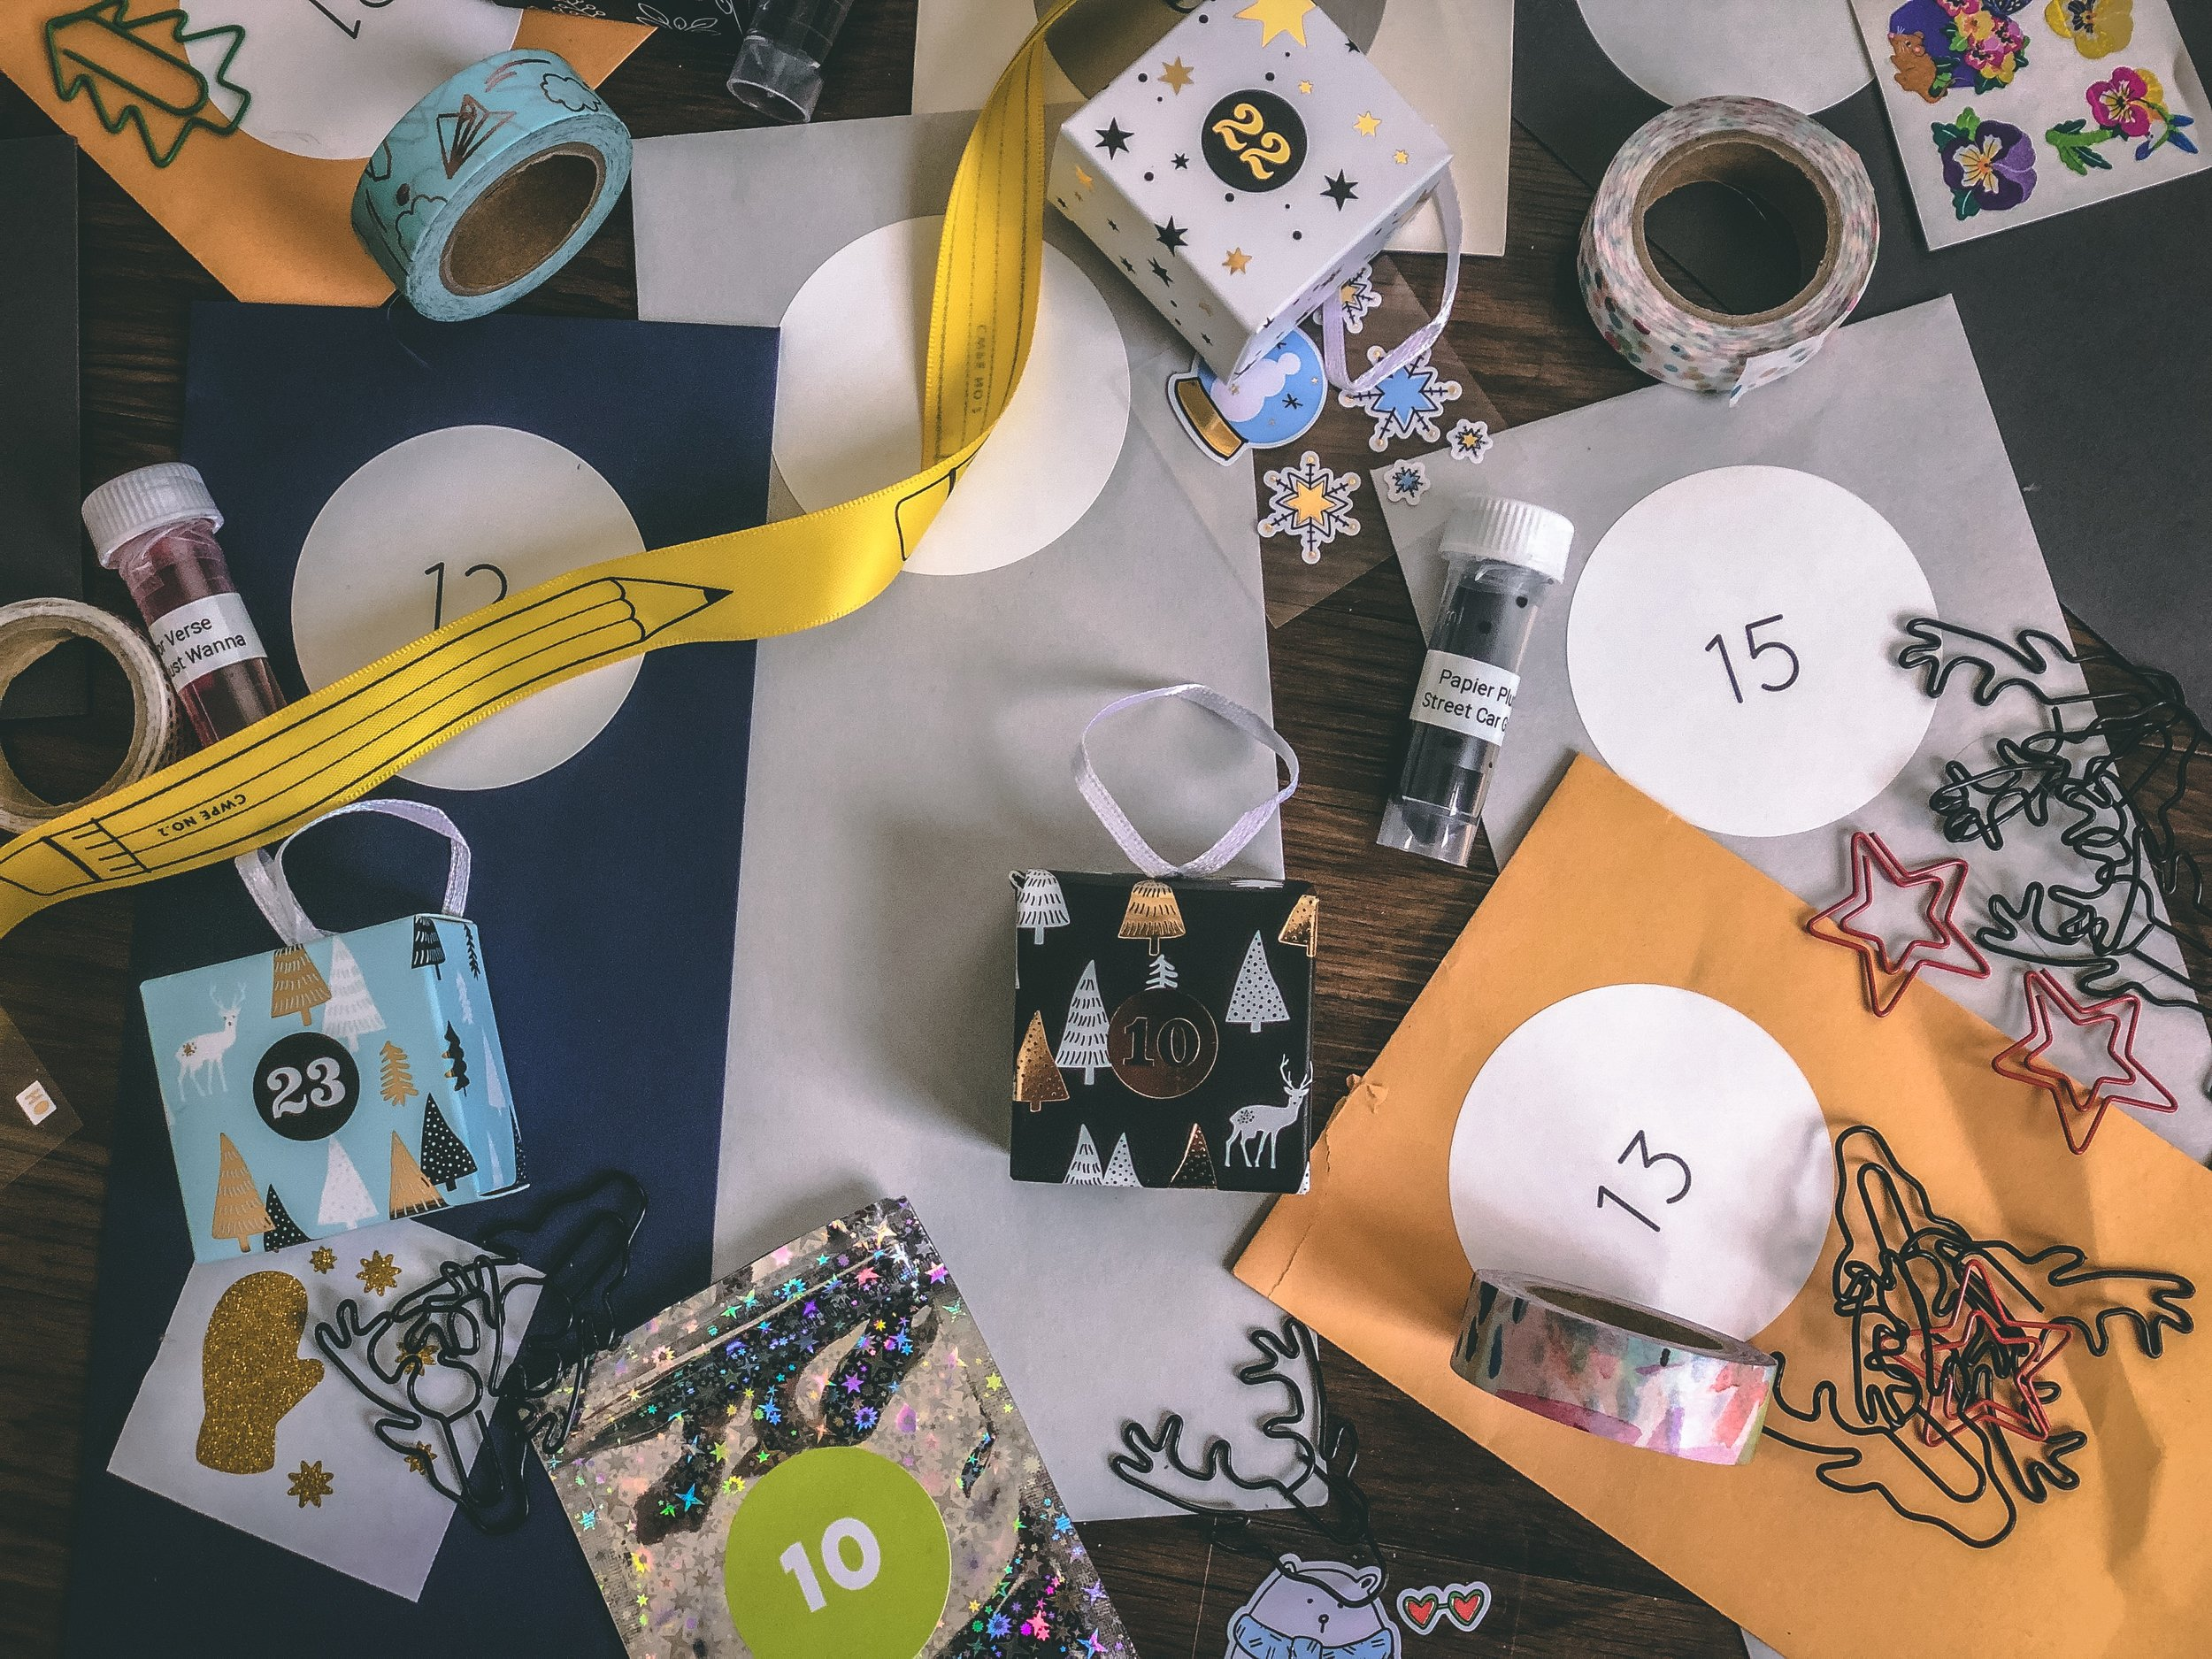 Advent calendar extravaganza above brought to you by my empty wallet and:  CW Pencils ,  Pipsticks , The PenAddict Slack Invent Swap, and  David's Tea